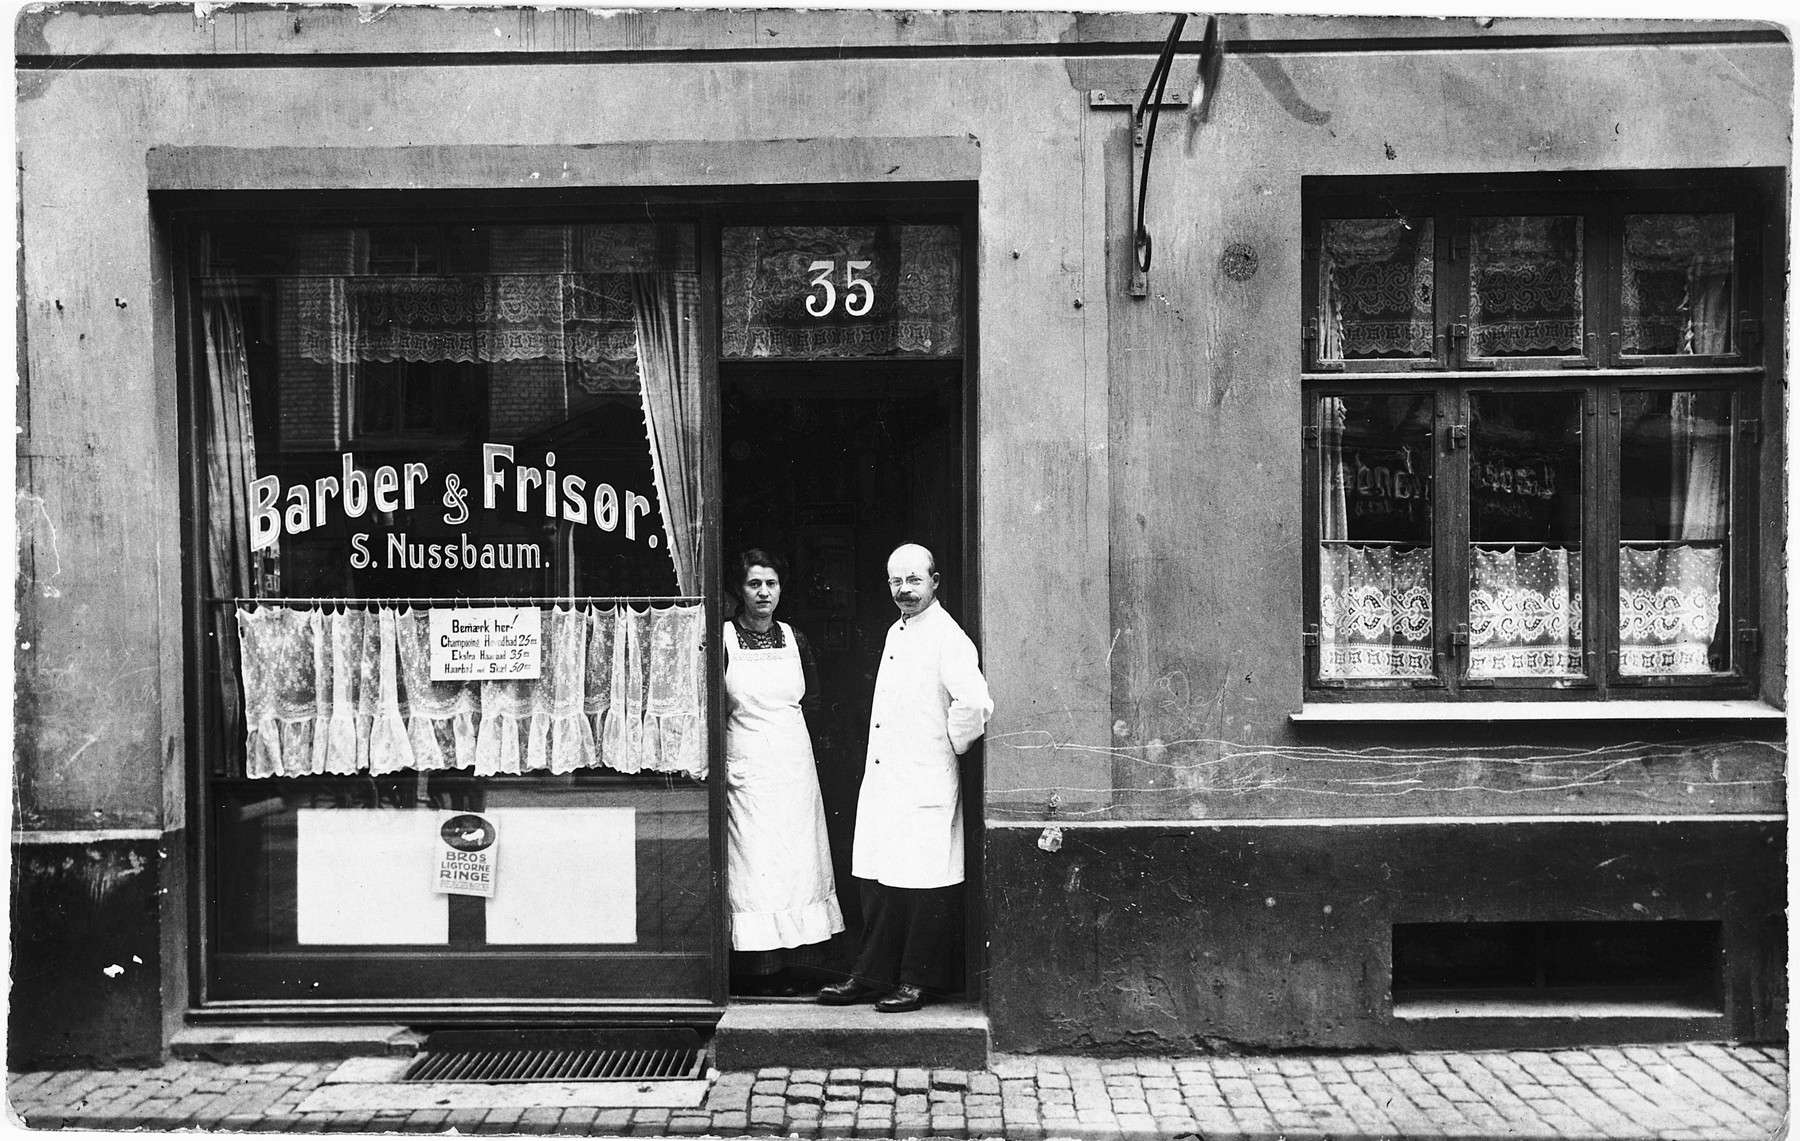 A Jewish couple poses in the doorway of their new barbershop located on the Ochenschlagergade in Copenhagen.  Pictured are Saul and Chane Nussbaum, who live in the same building.